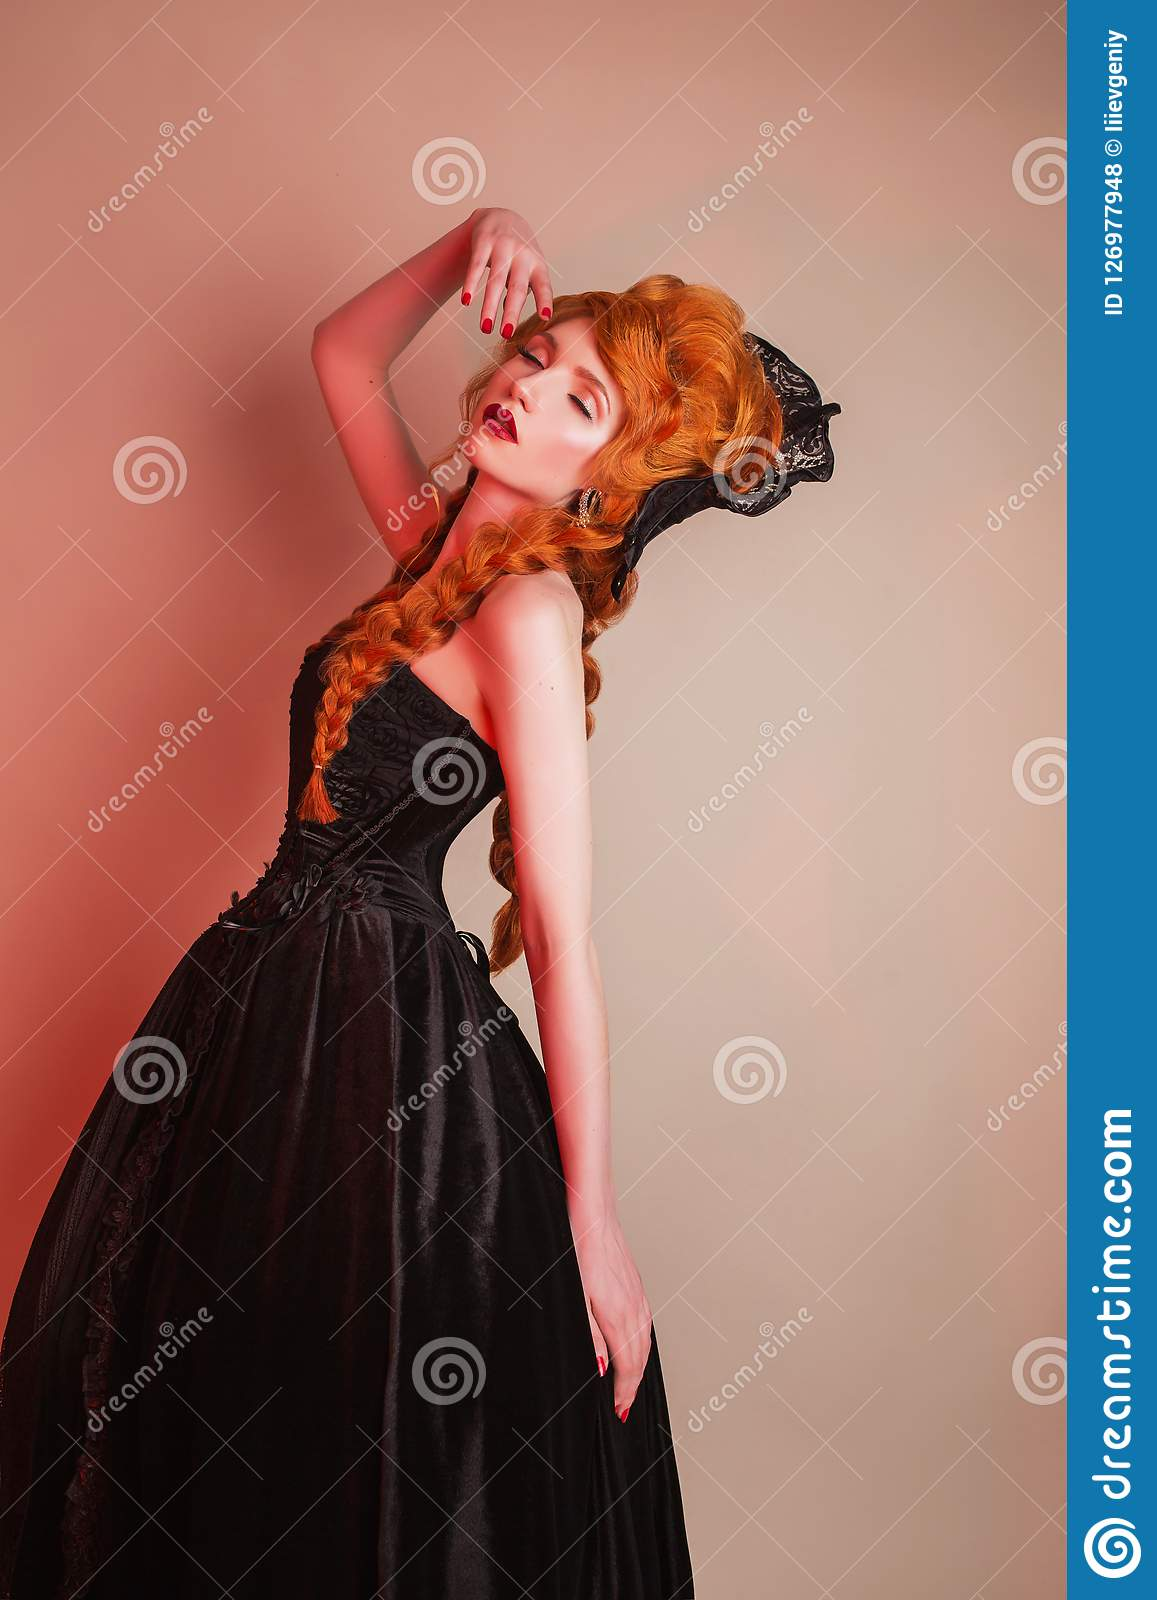 Gothic carnival clothes. Young dancing redhead queen with hairstyle. Princess with red hair. Vampire with pale skin. Mystical outf